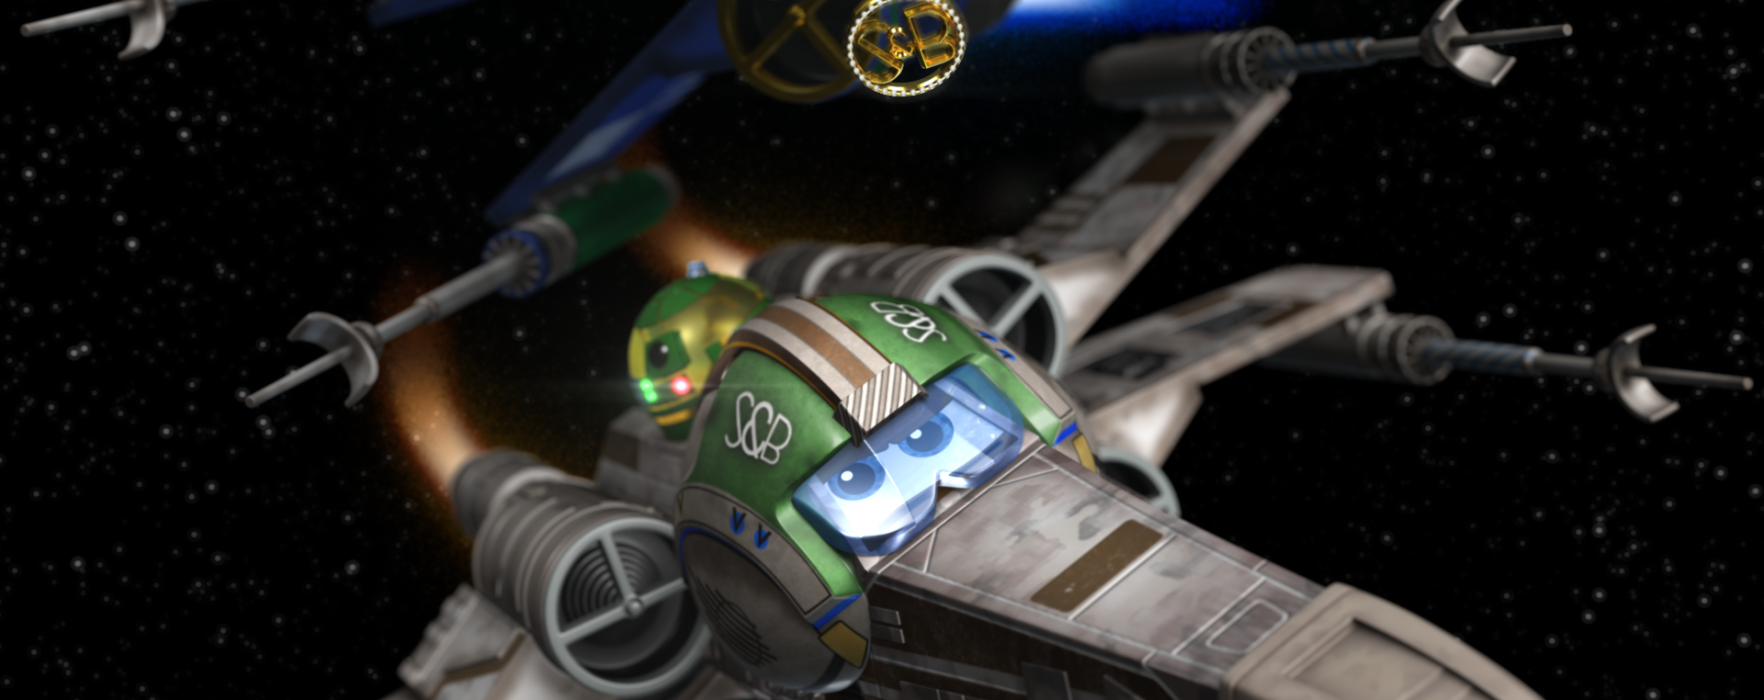 What if Disney-Pixar did Star Wars? Fan Made Disney-Pixar's X-Wings Answers This Question.